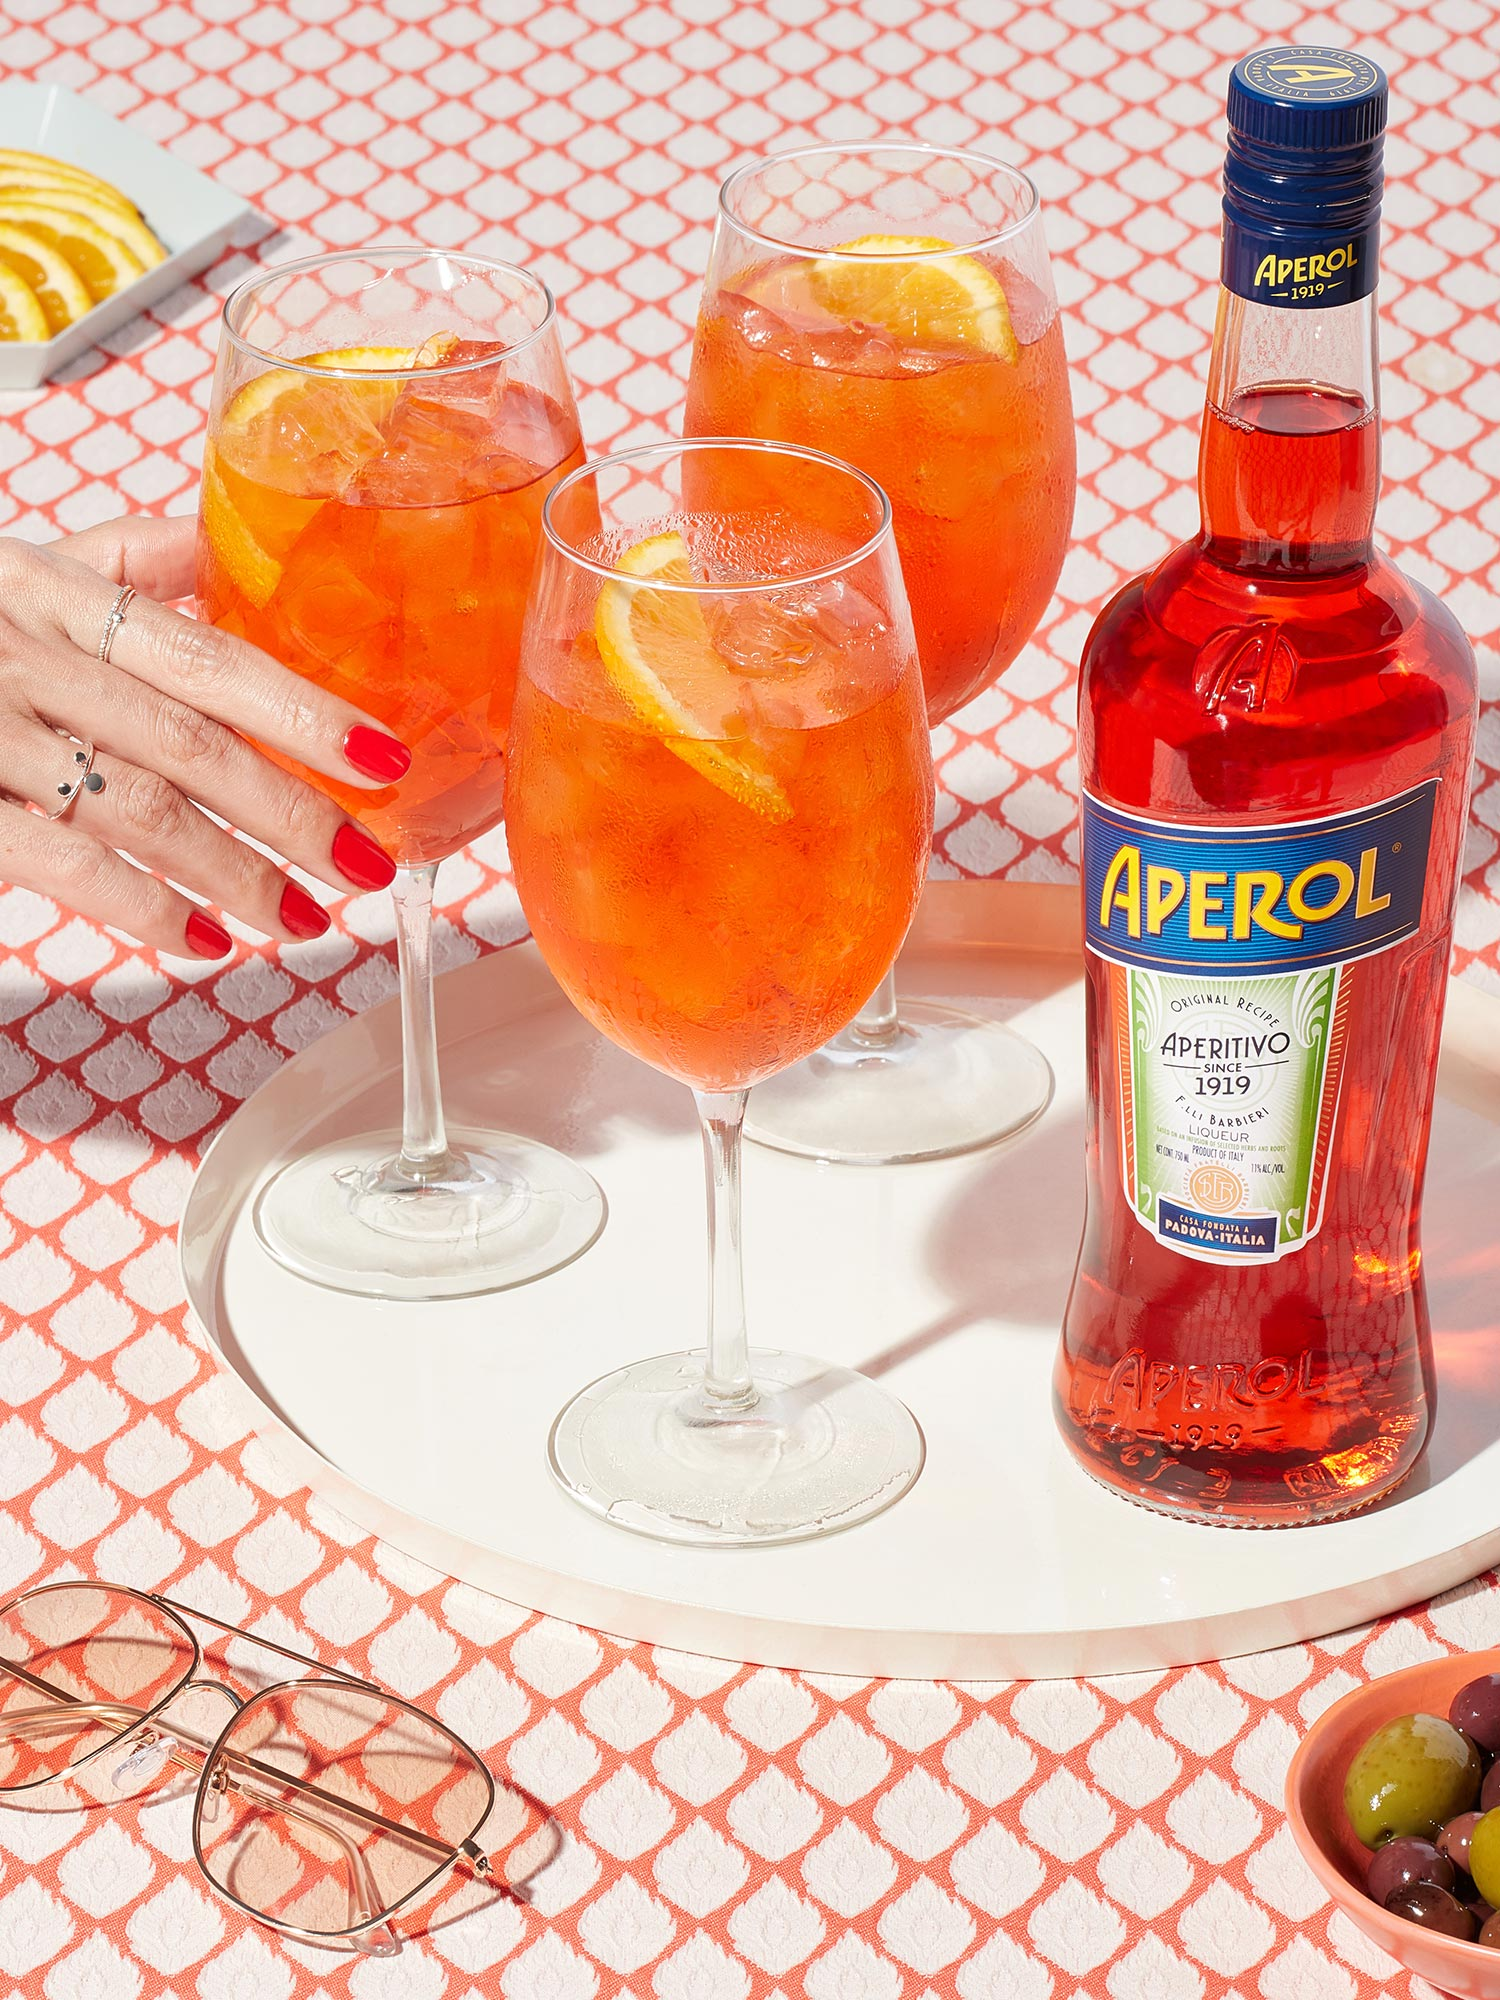 tom-medvedich-still-life-beverages-aperol-04.jpg